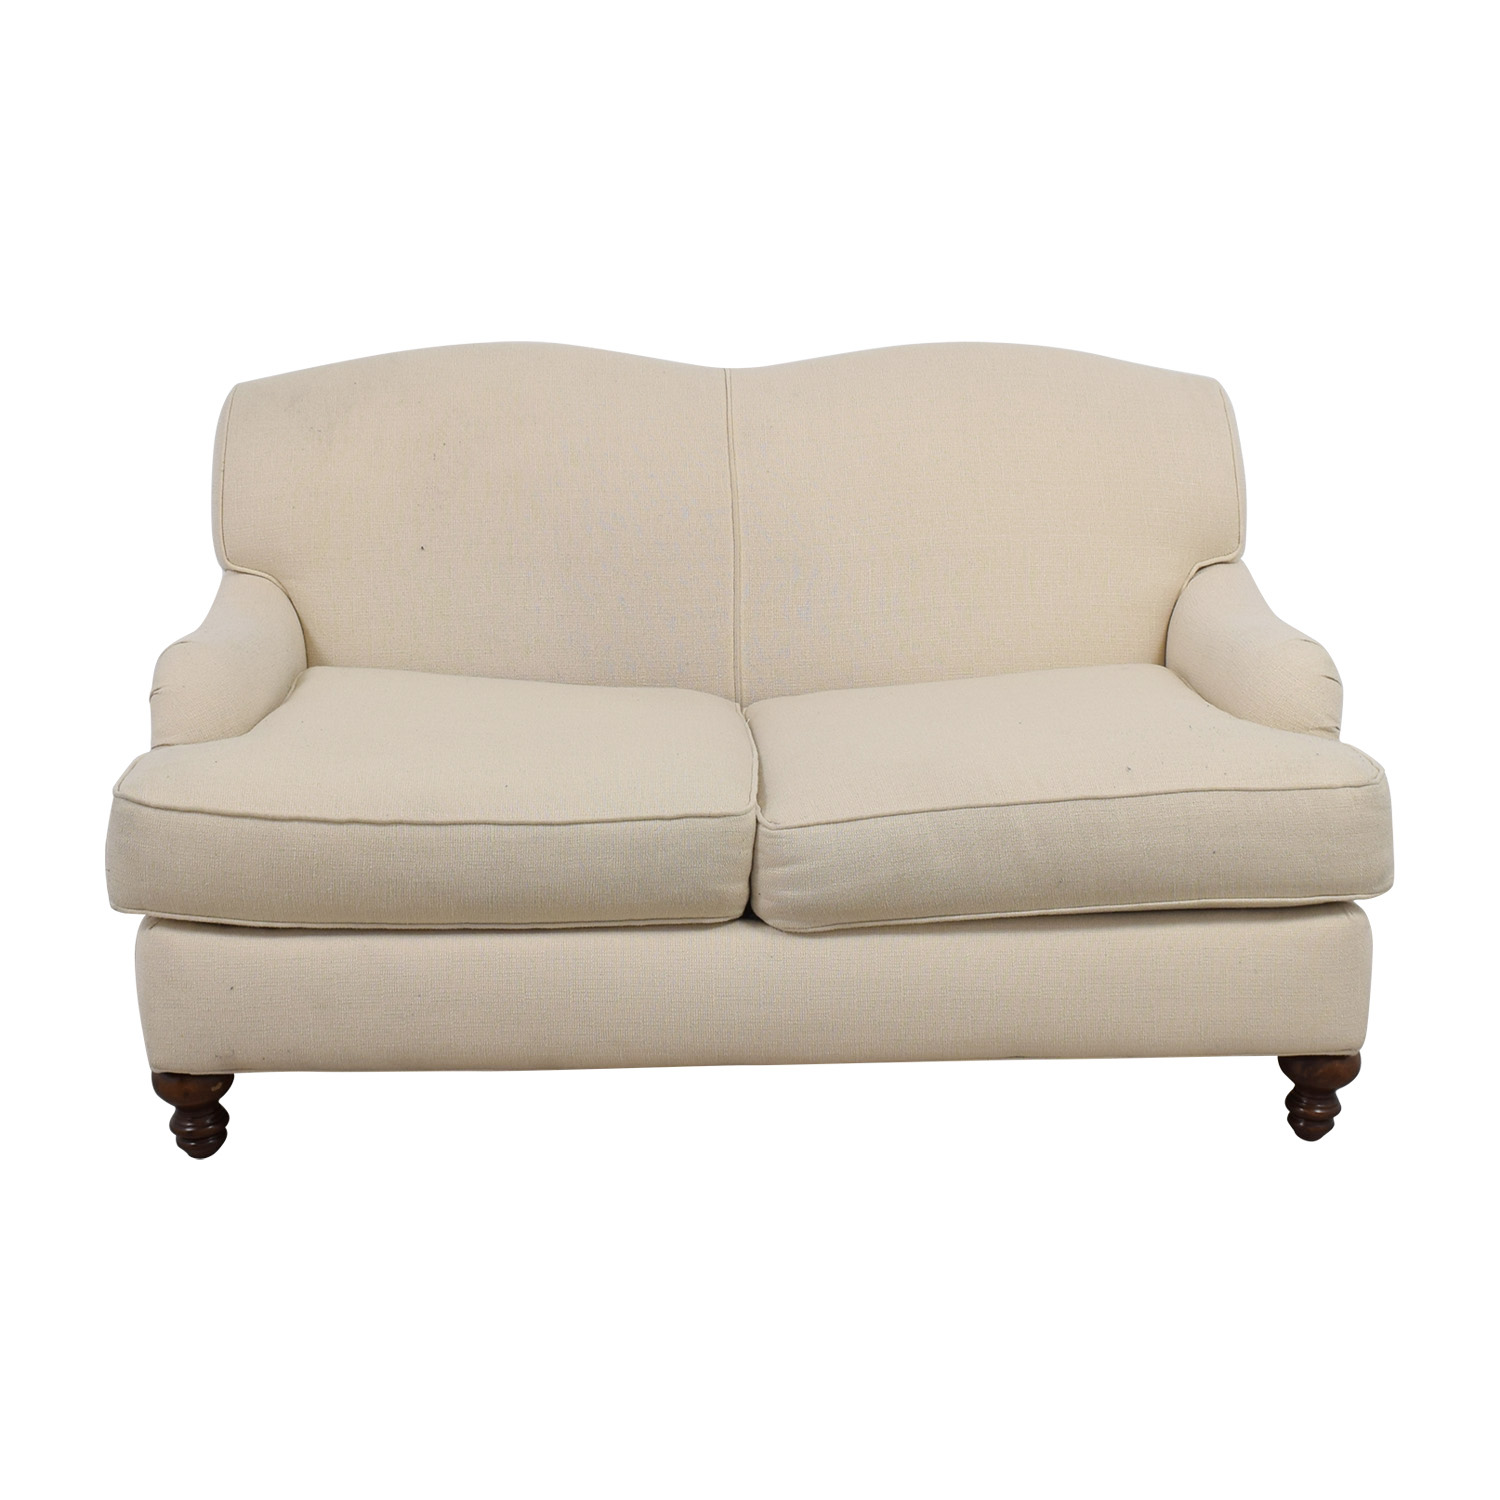 Bob Mills Furniture Bob Mills Furniture Cream Love Seat for sale